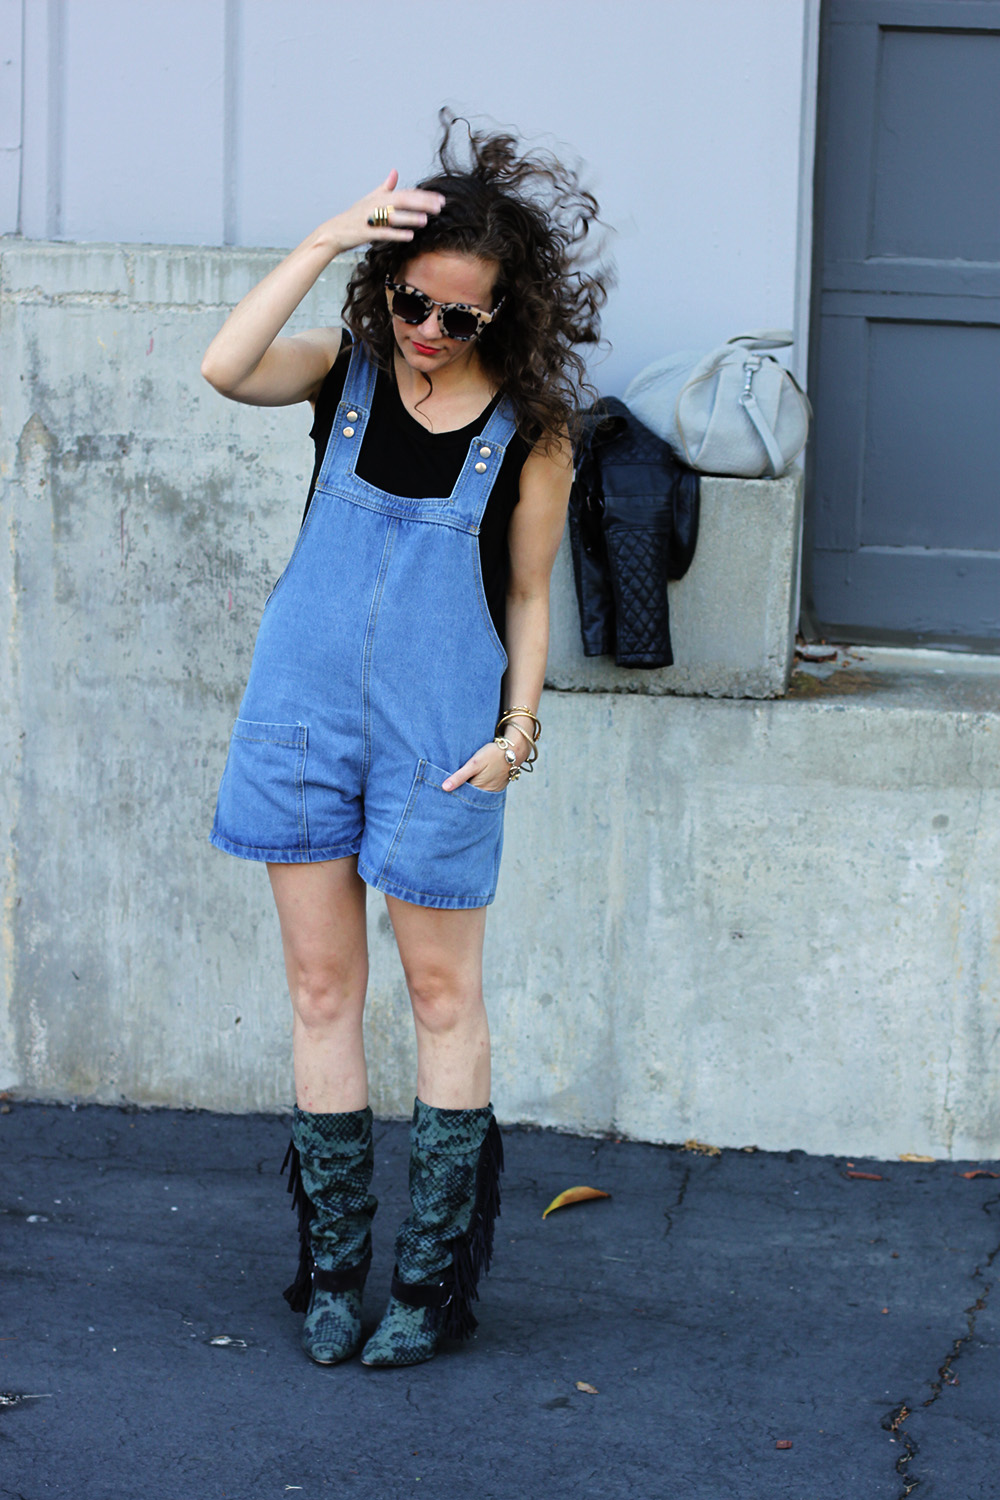 Hair flip! Short Overalls go edgy on undeniablestyle.com